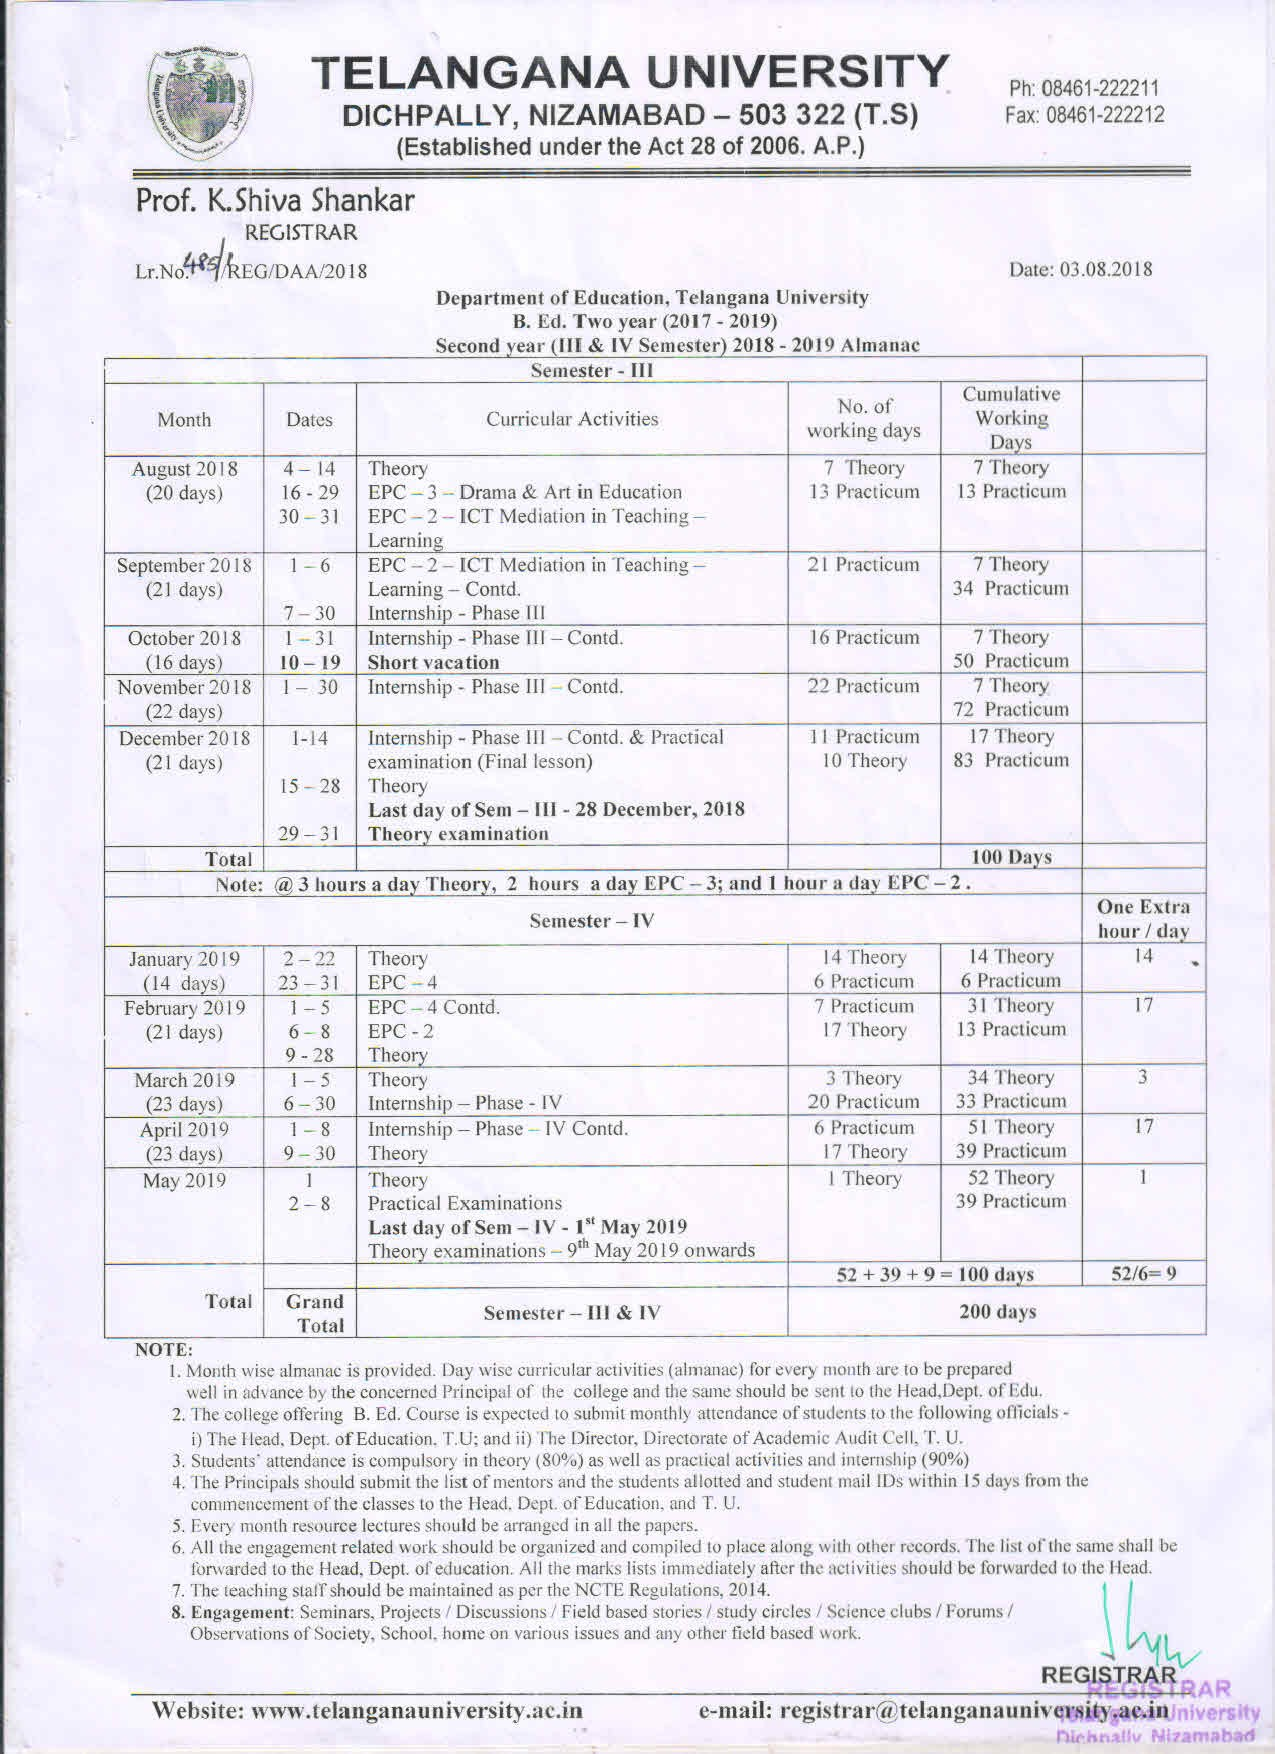 B Ed Two Years 2017 2019 Batch Second Year III & IV semester Almanac for the A Y 2018 2019